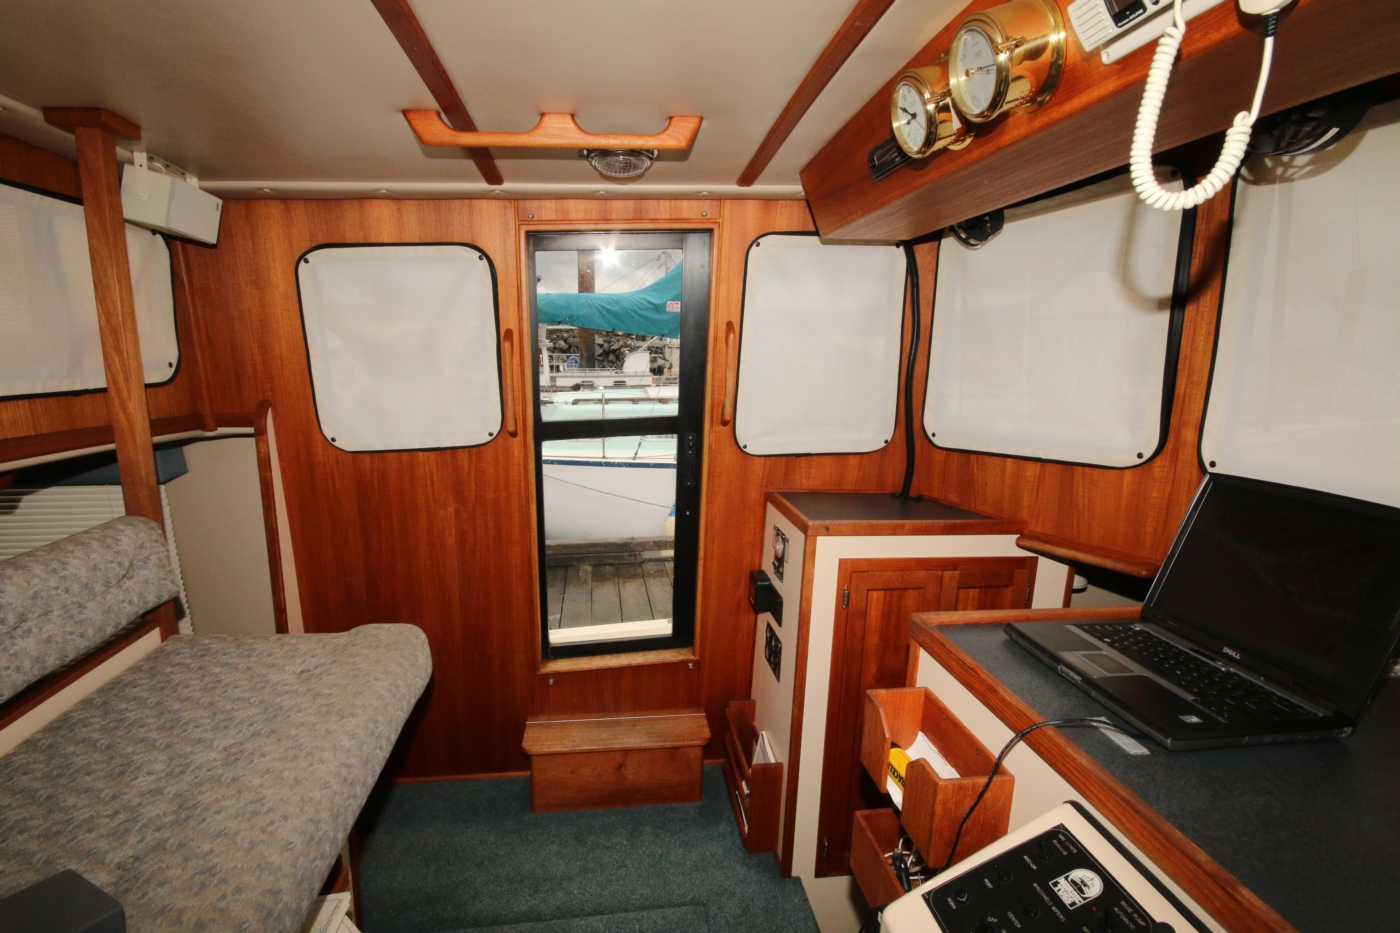 1999 Nordic Tugs 32, Pilothouse view to Port